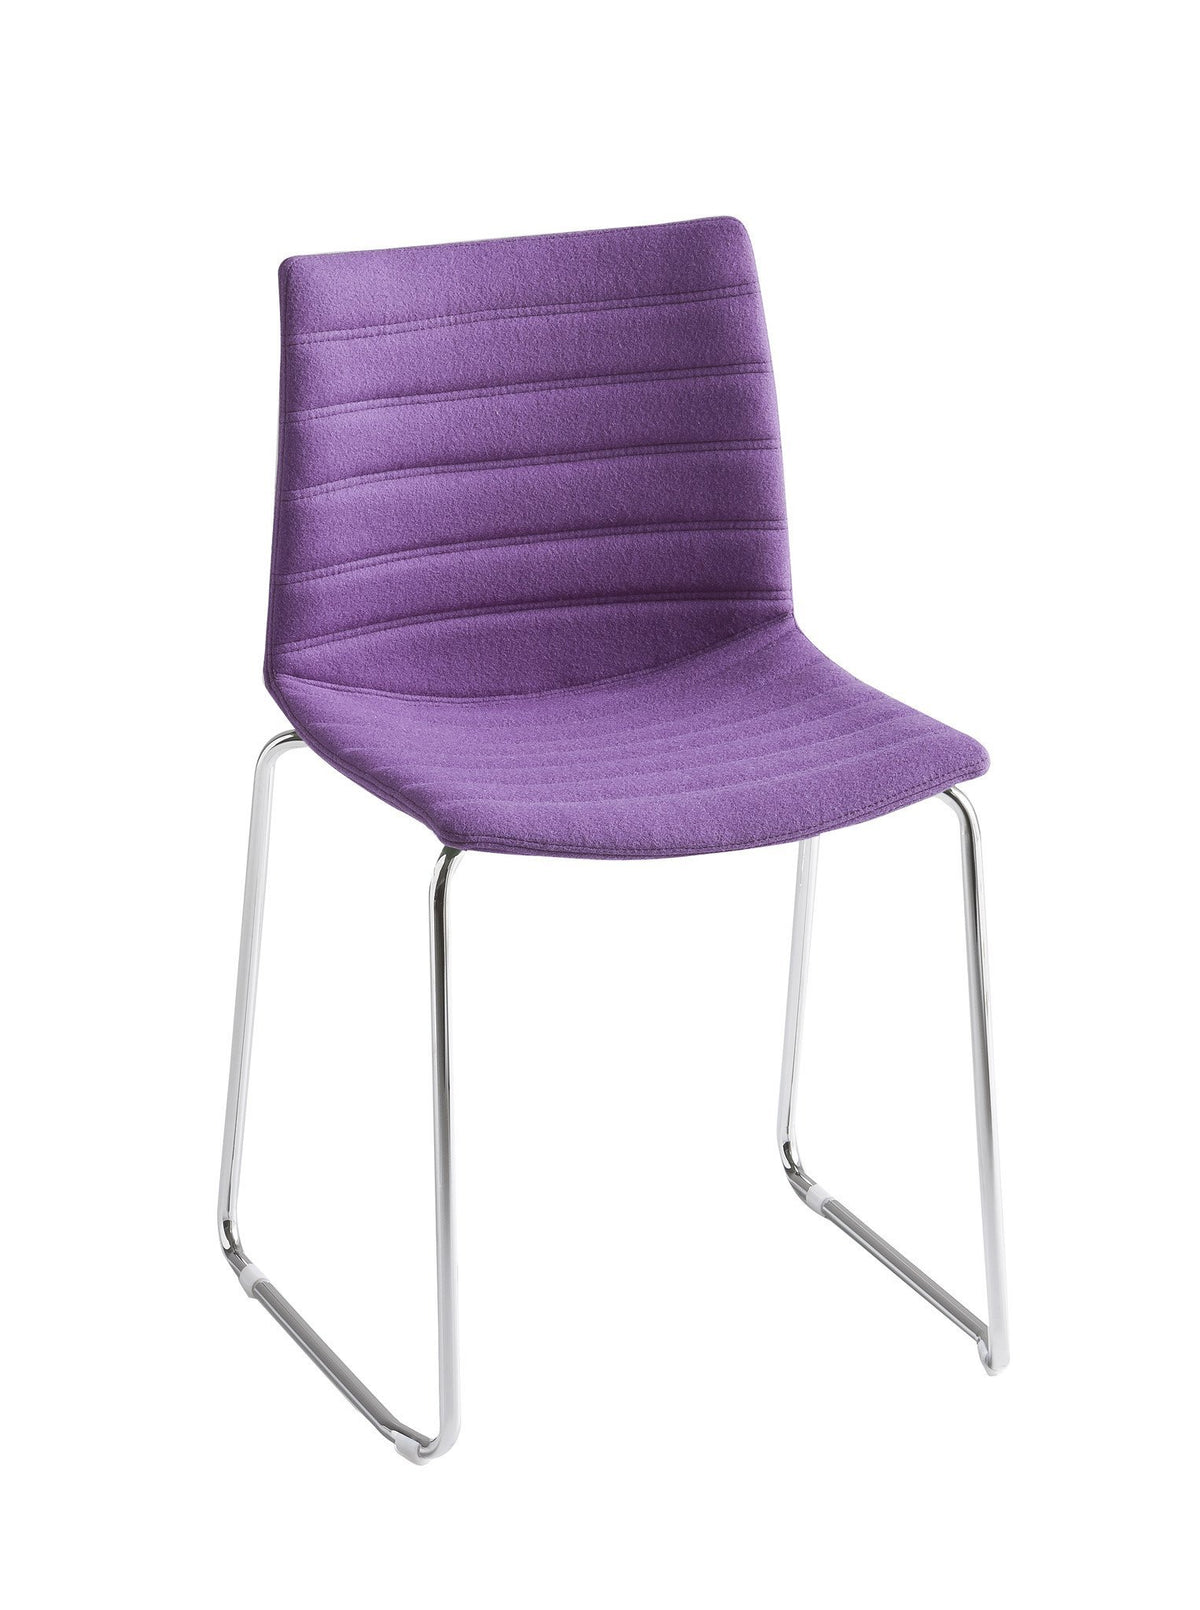 Kanvas Full Side Chair c/w Sled Legs-Gaber-Contract Furniture Store